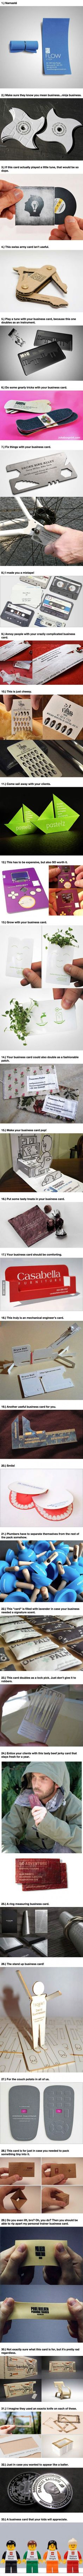 These 33 Unique Business Cards Will Make You Stand Out From The Crowd.